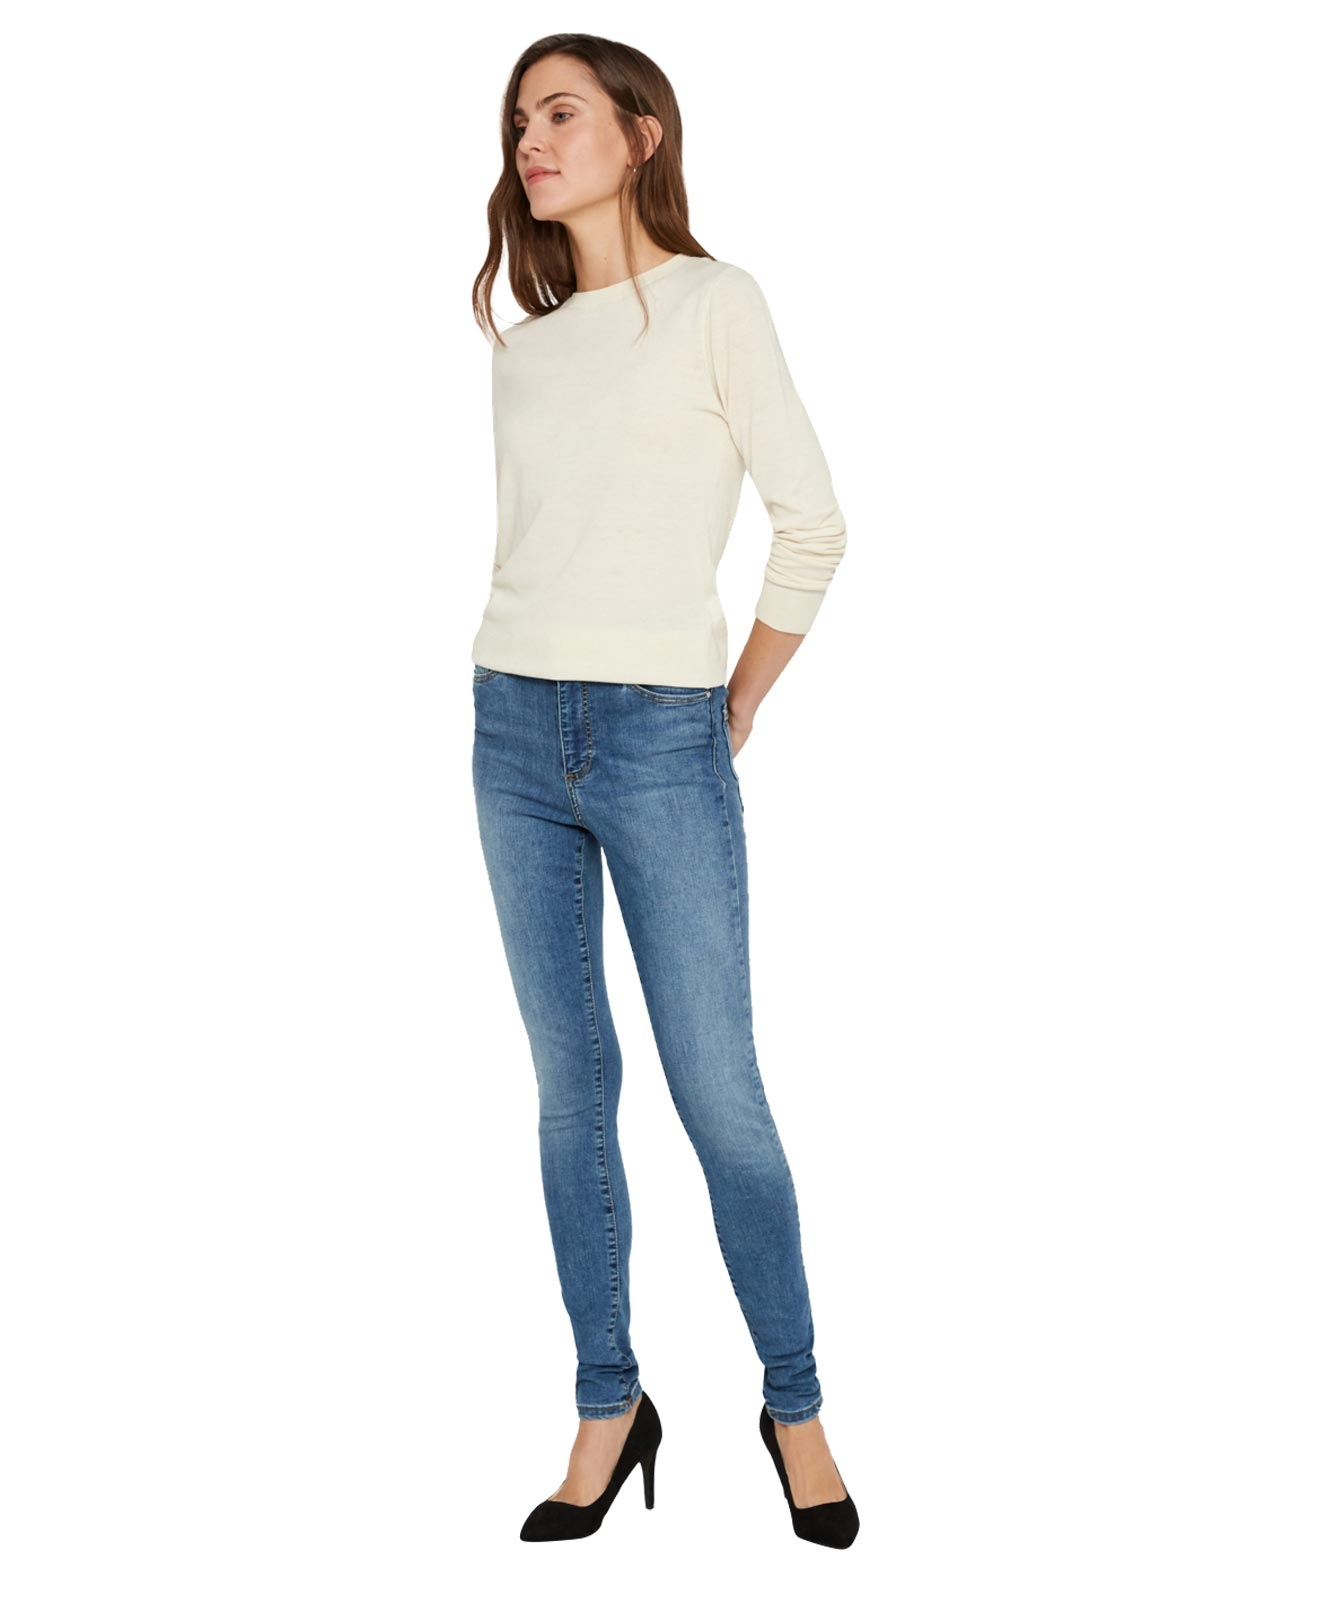 Hosen - Vero Moda High Waisted Jeans Sophia in Light Blue  - Onlineshop Jeans Meile